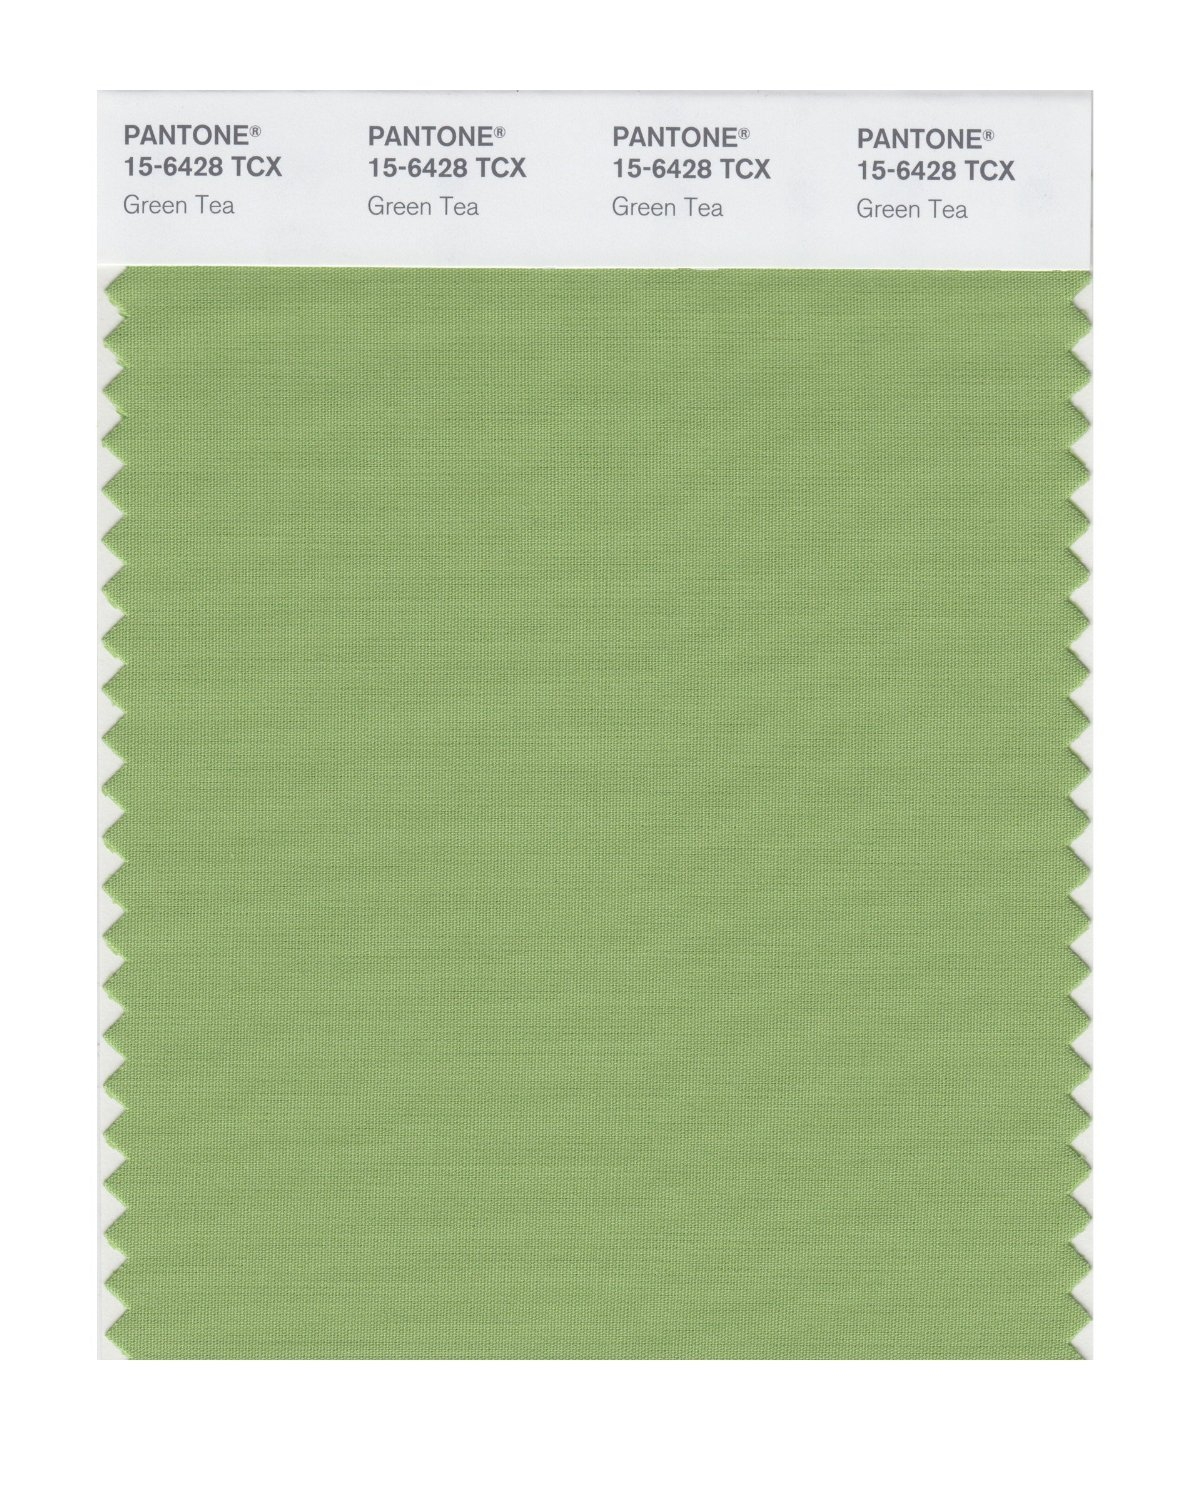 Pantone Smart Swatch 15-6428 Green Tea